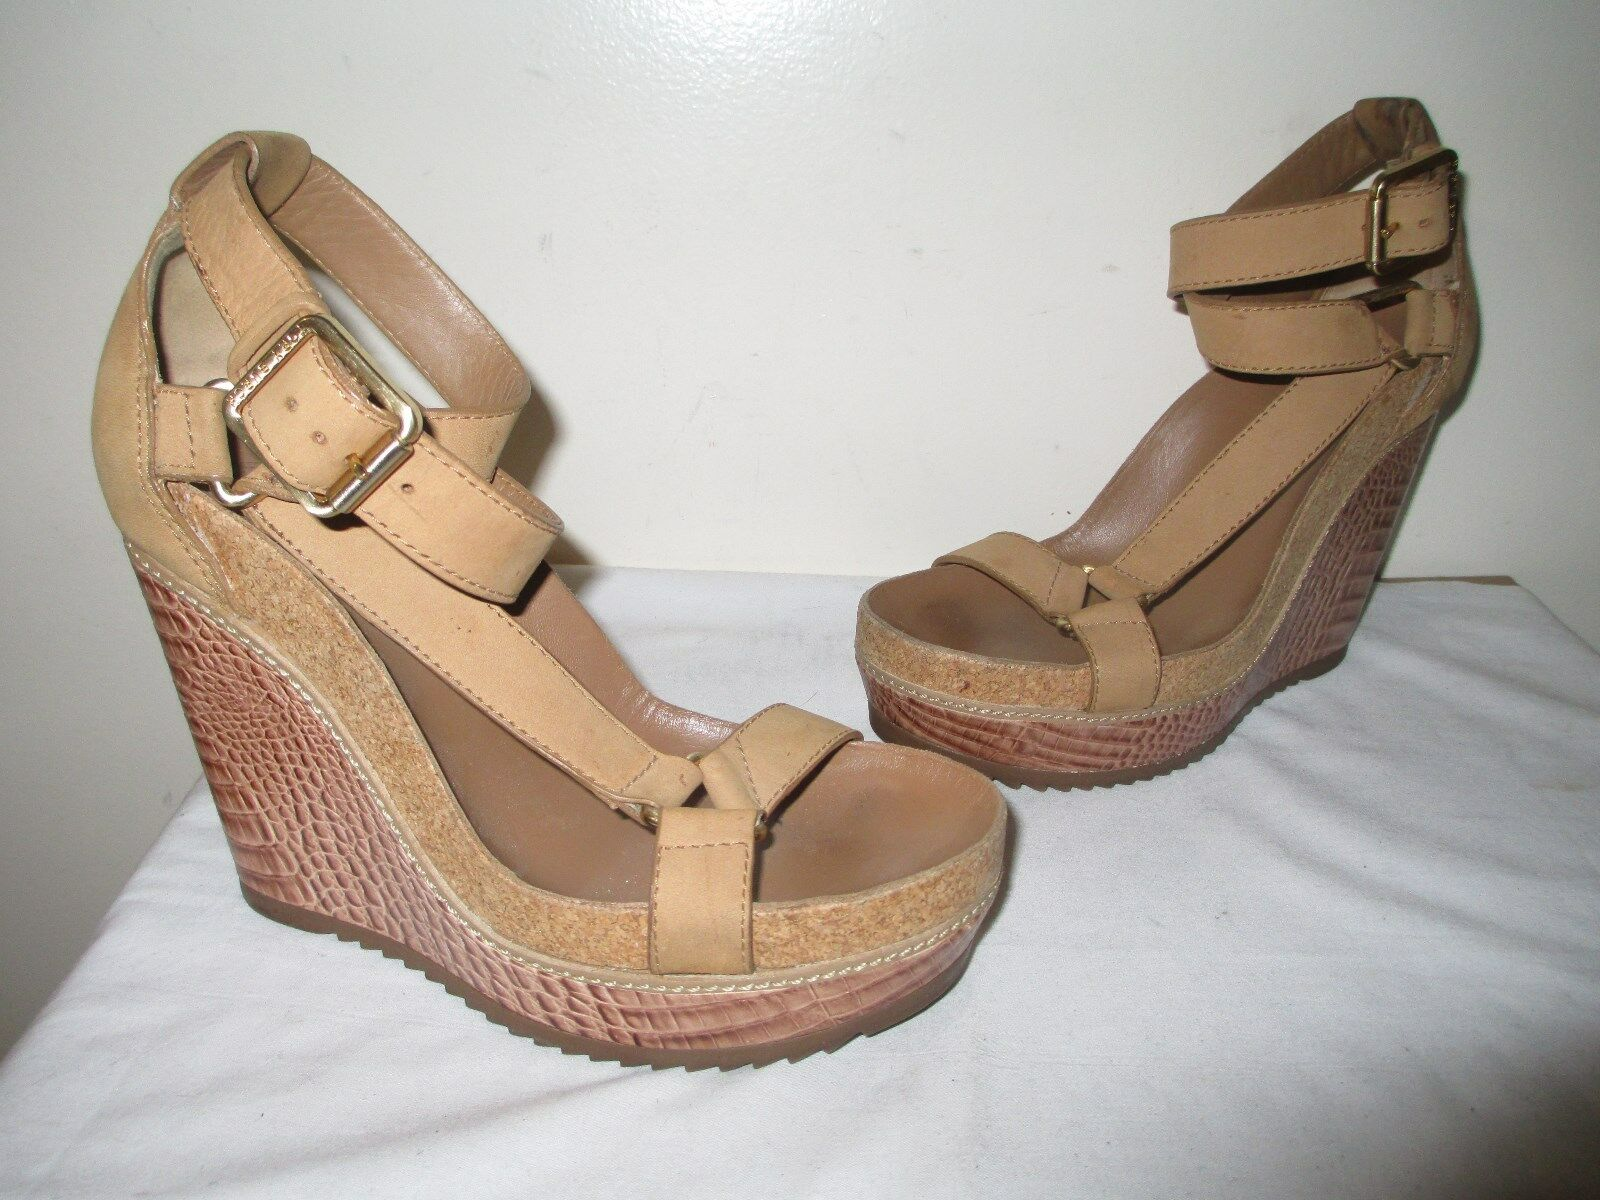 355 TORY BURCH TAN BROWN LEATHER WEDGE ANKLE STRAP SANDALS SZ 8 ½ M